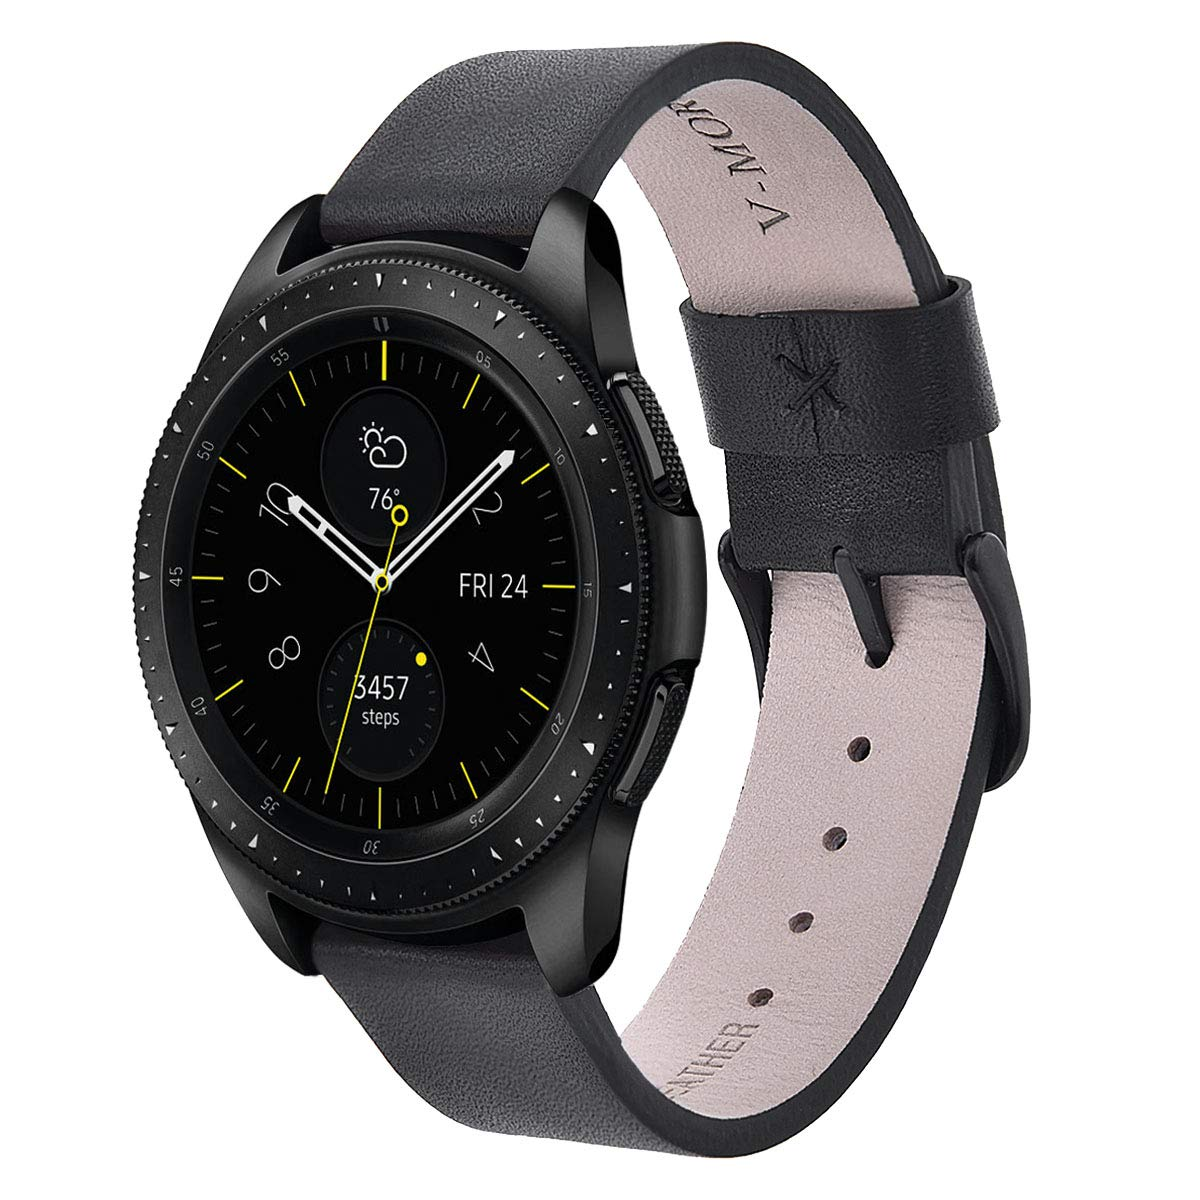 Malla De Cuero Negra Para Samsung Galaxy Watch 40 / 42mm